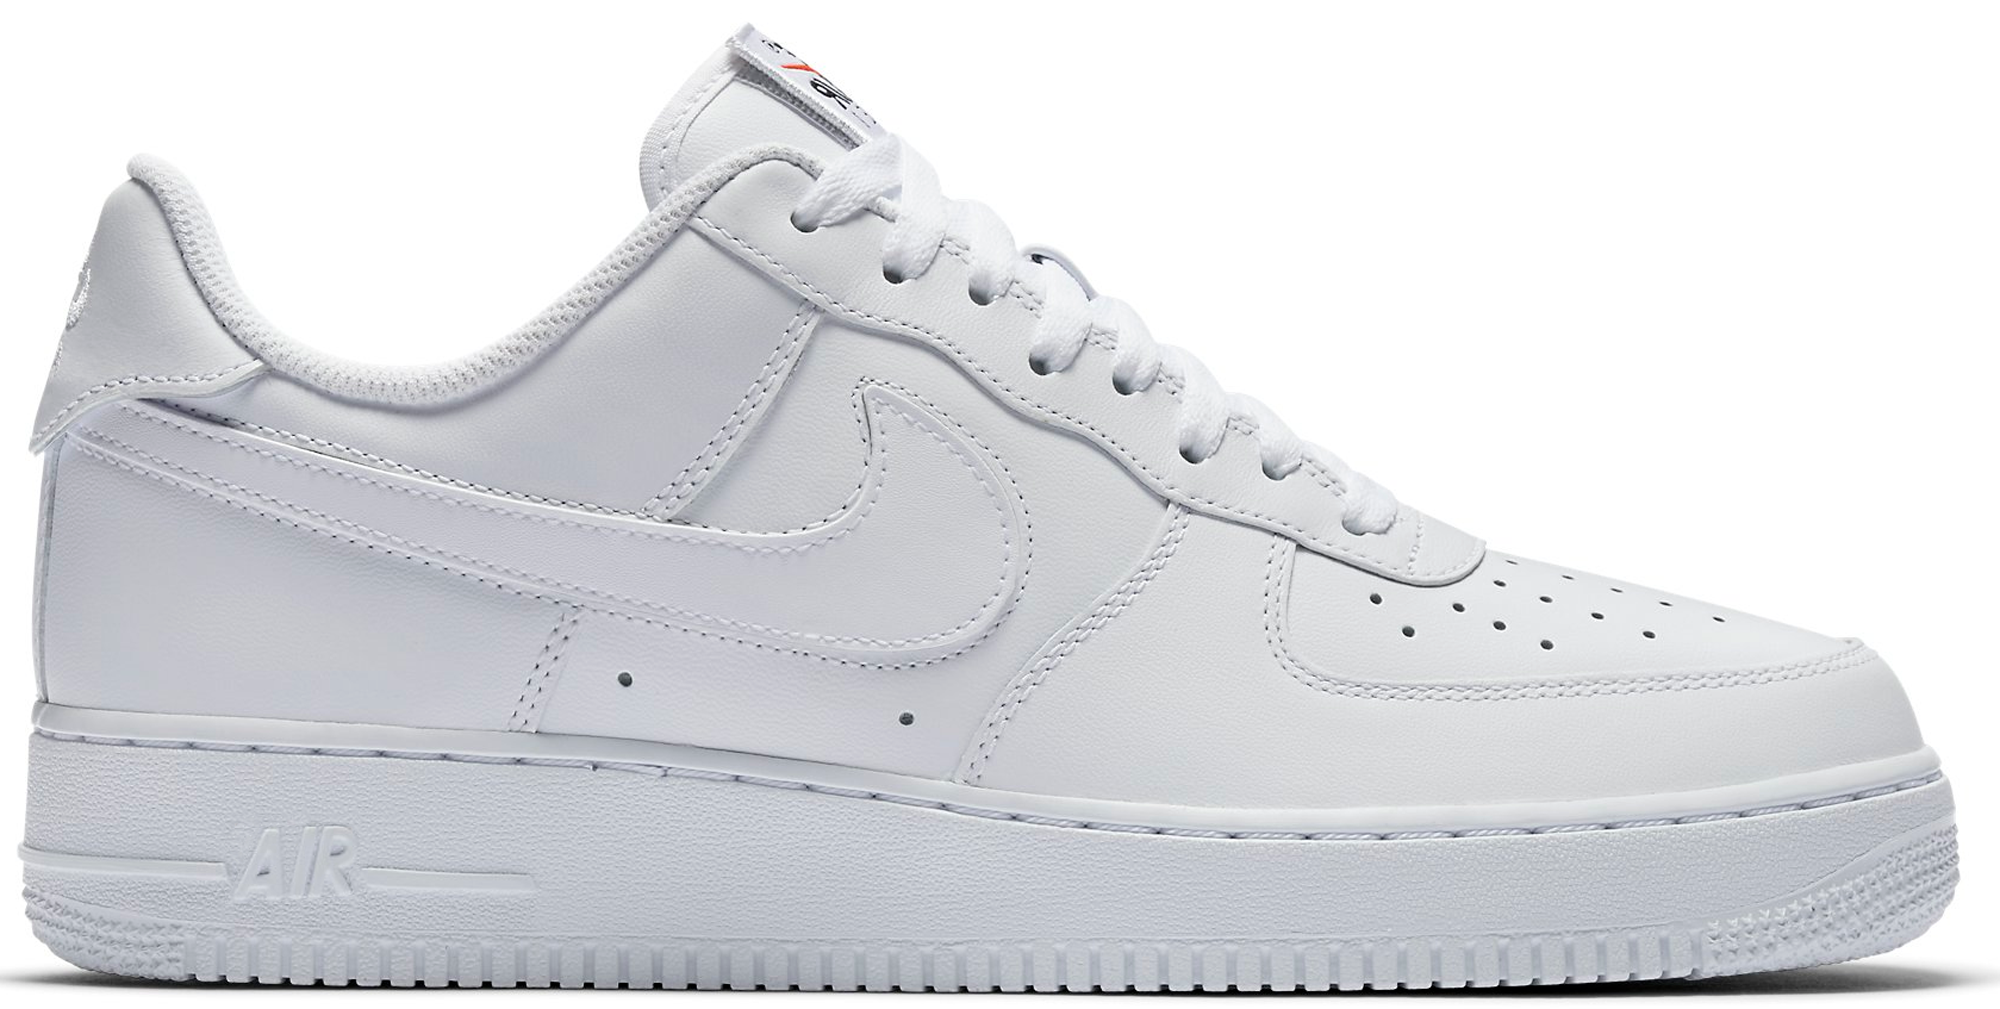 Nike Air Force 1 Paquet Bruissement Stockx